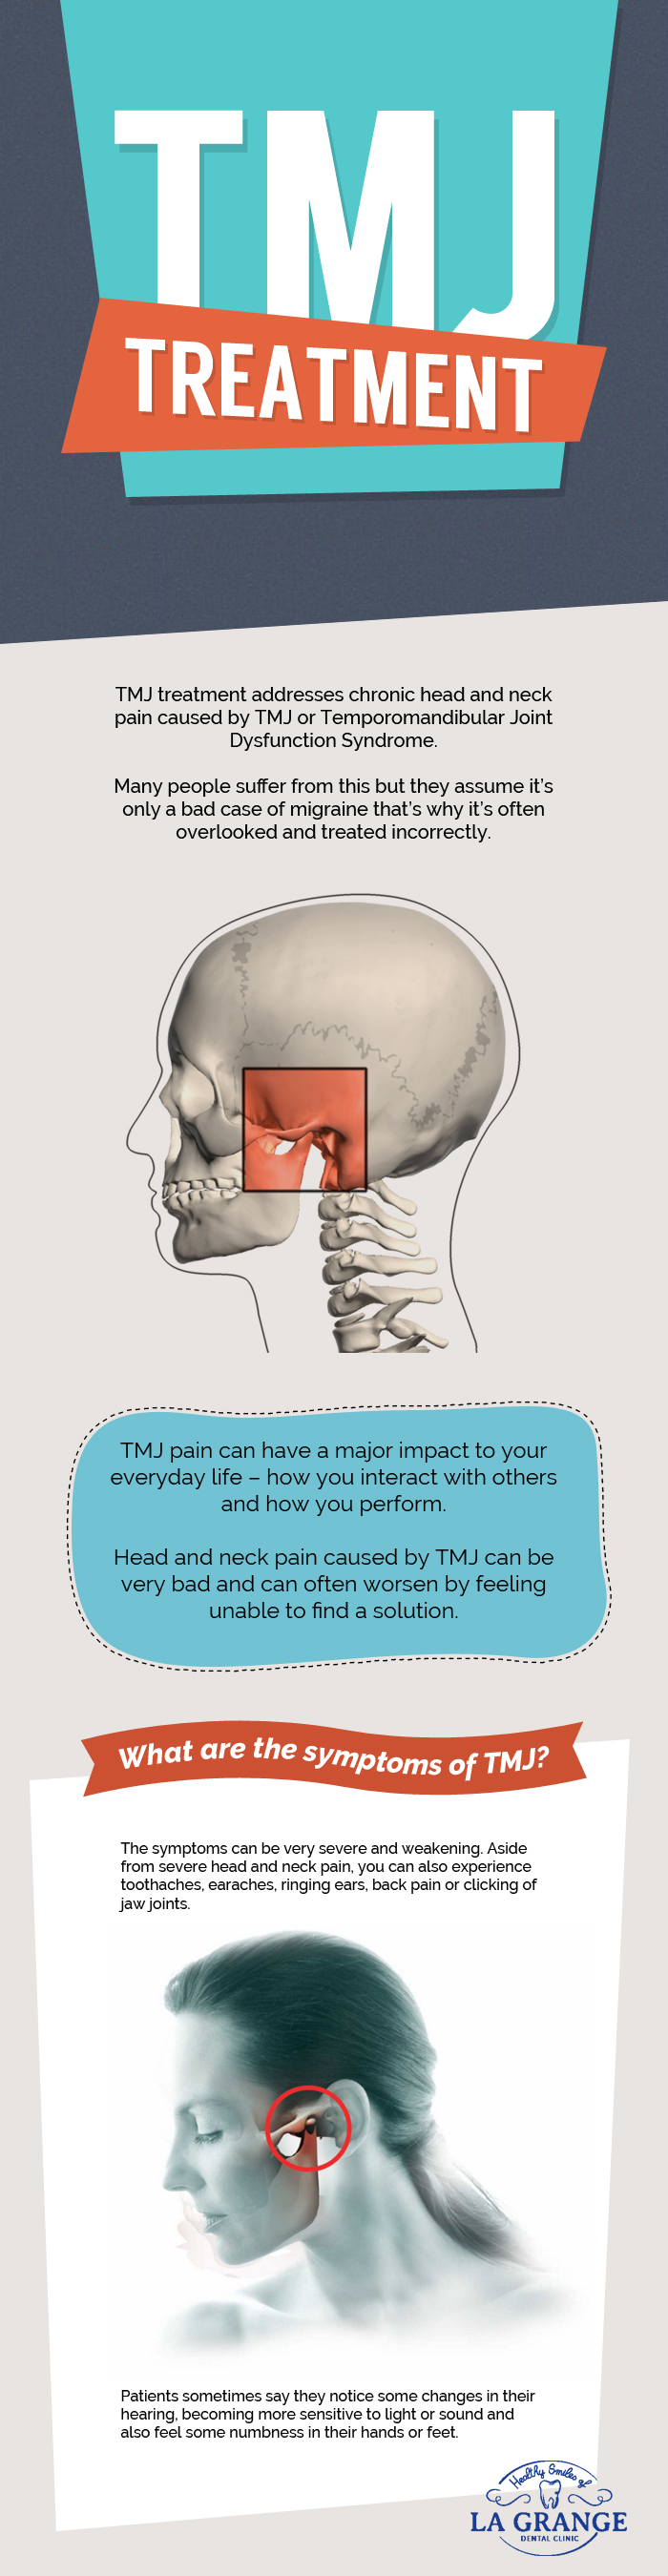 tmj treatment facts